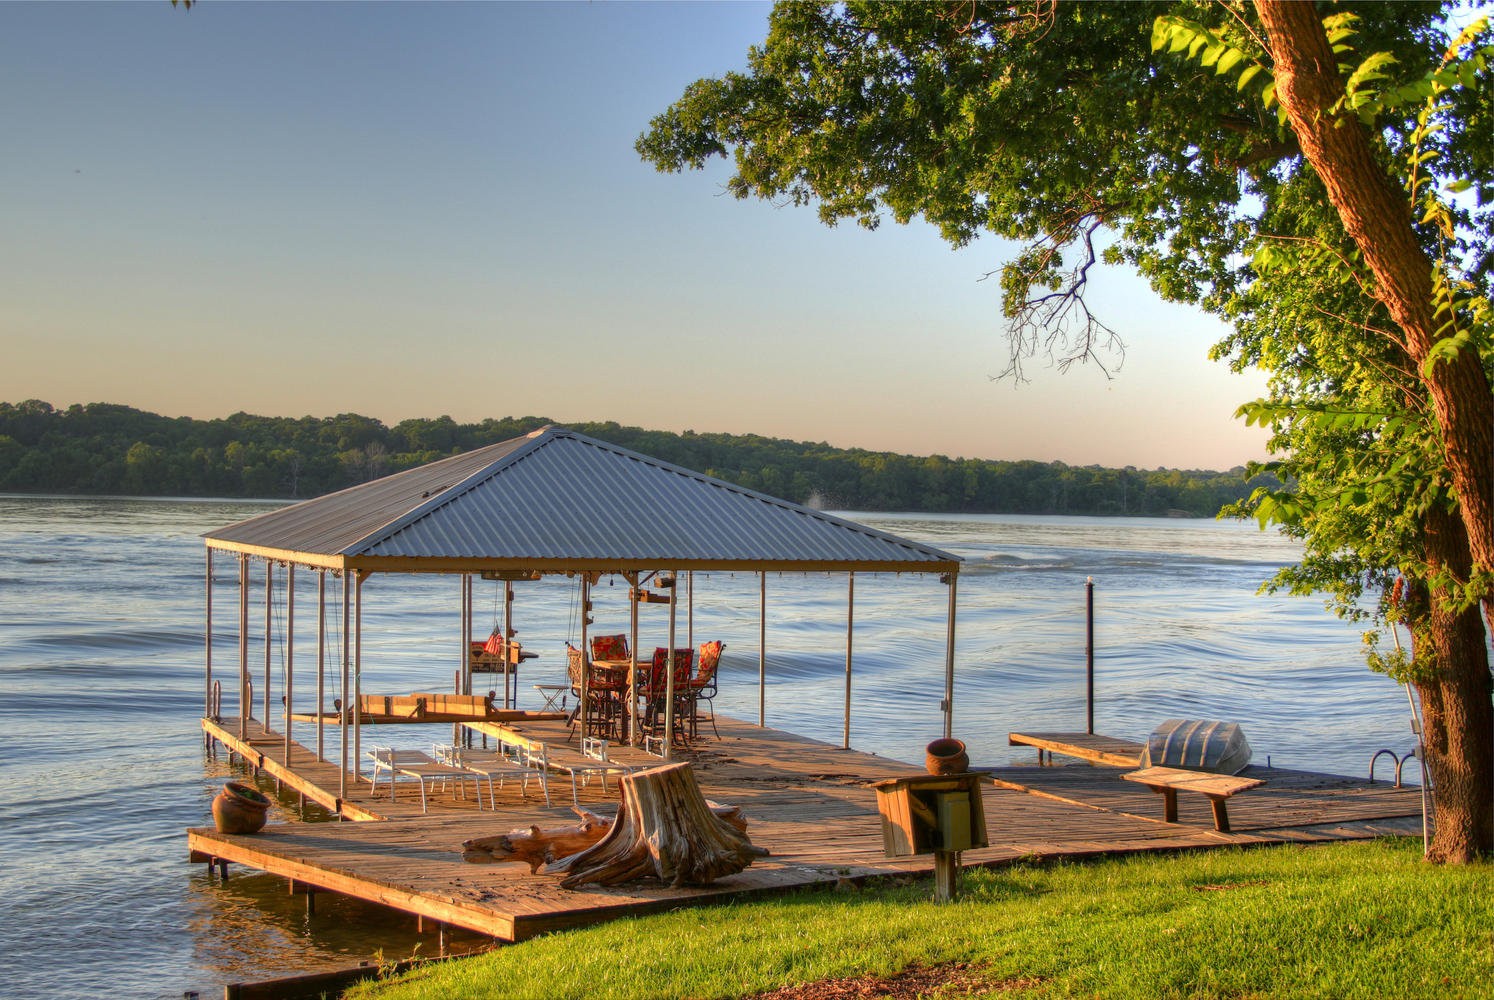 Boat dock at your doorstep! Walk out and enjoy a cruise around the lake.